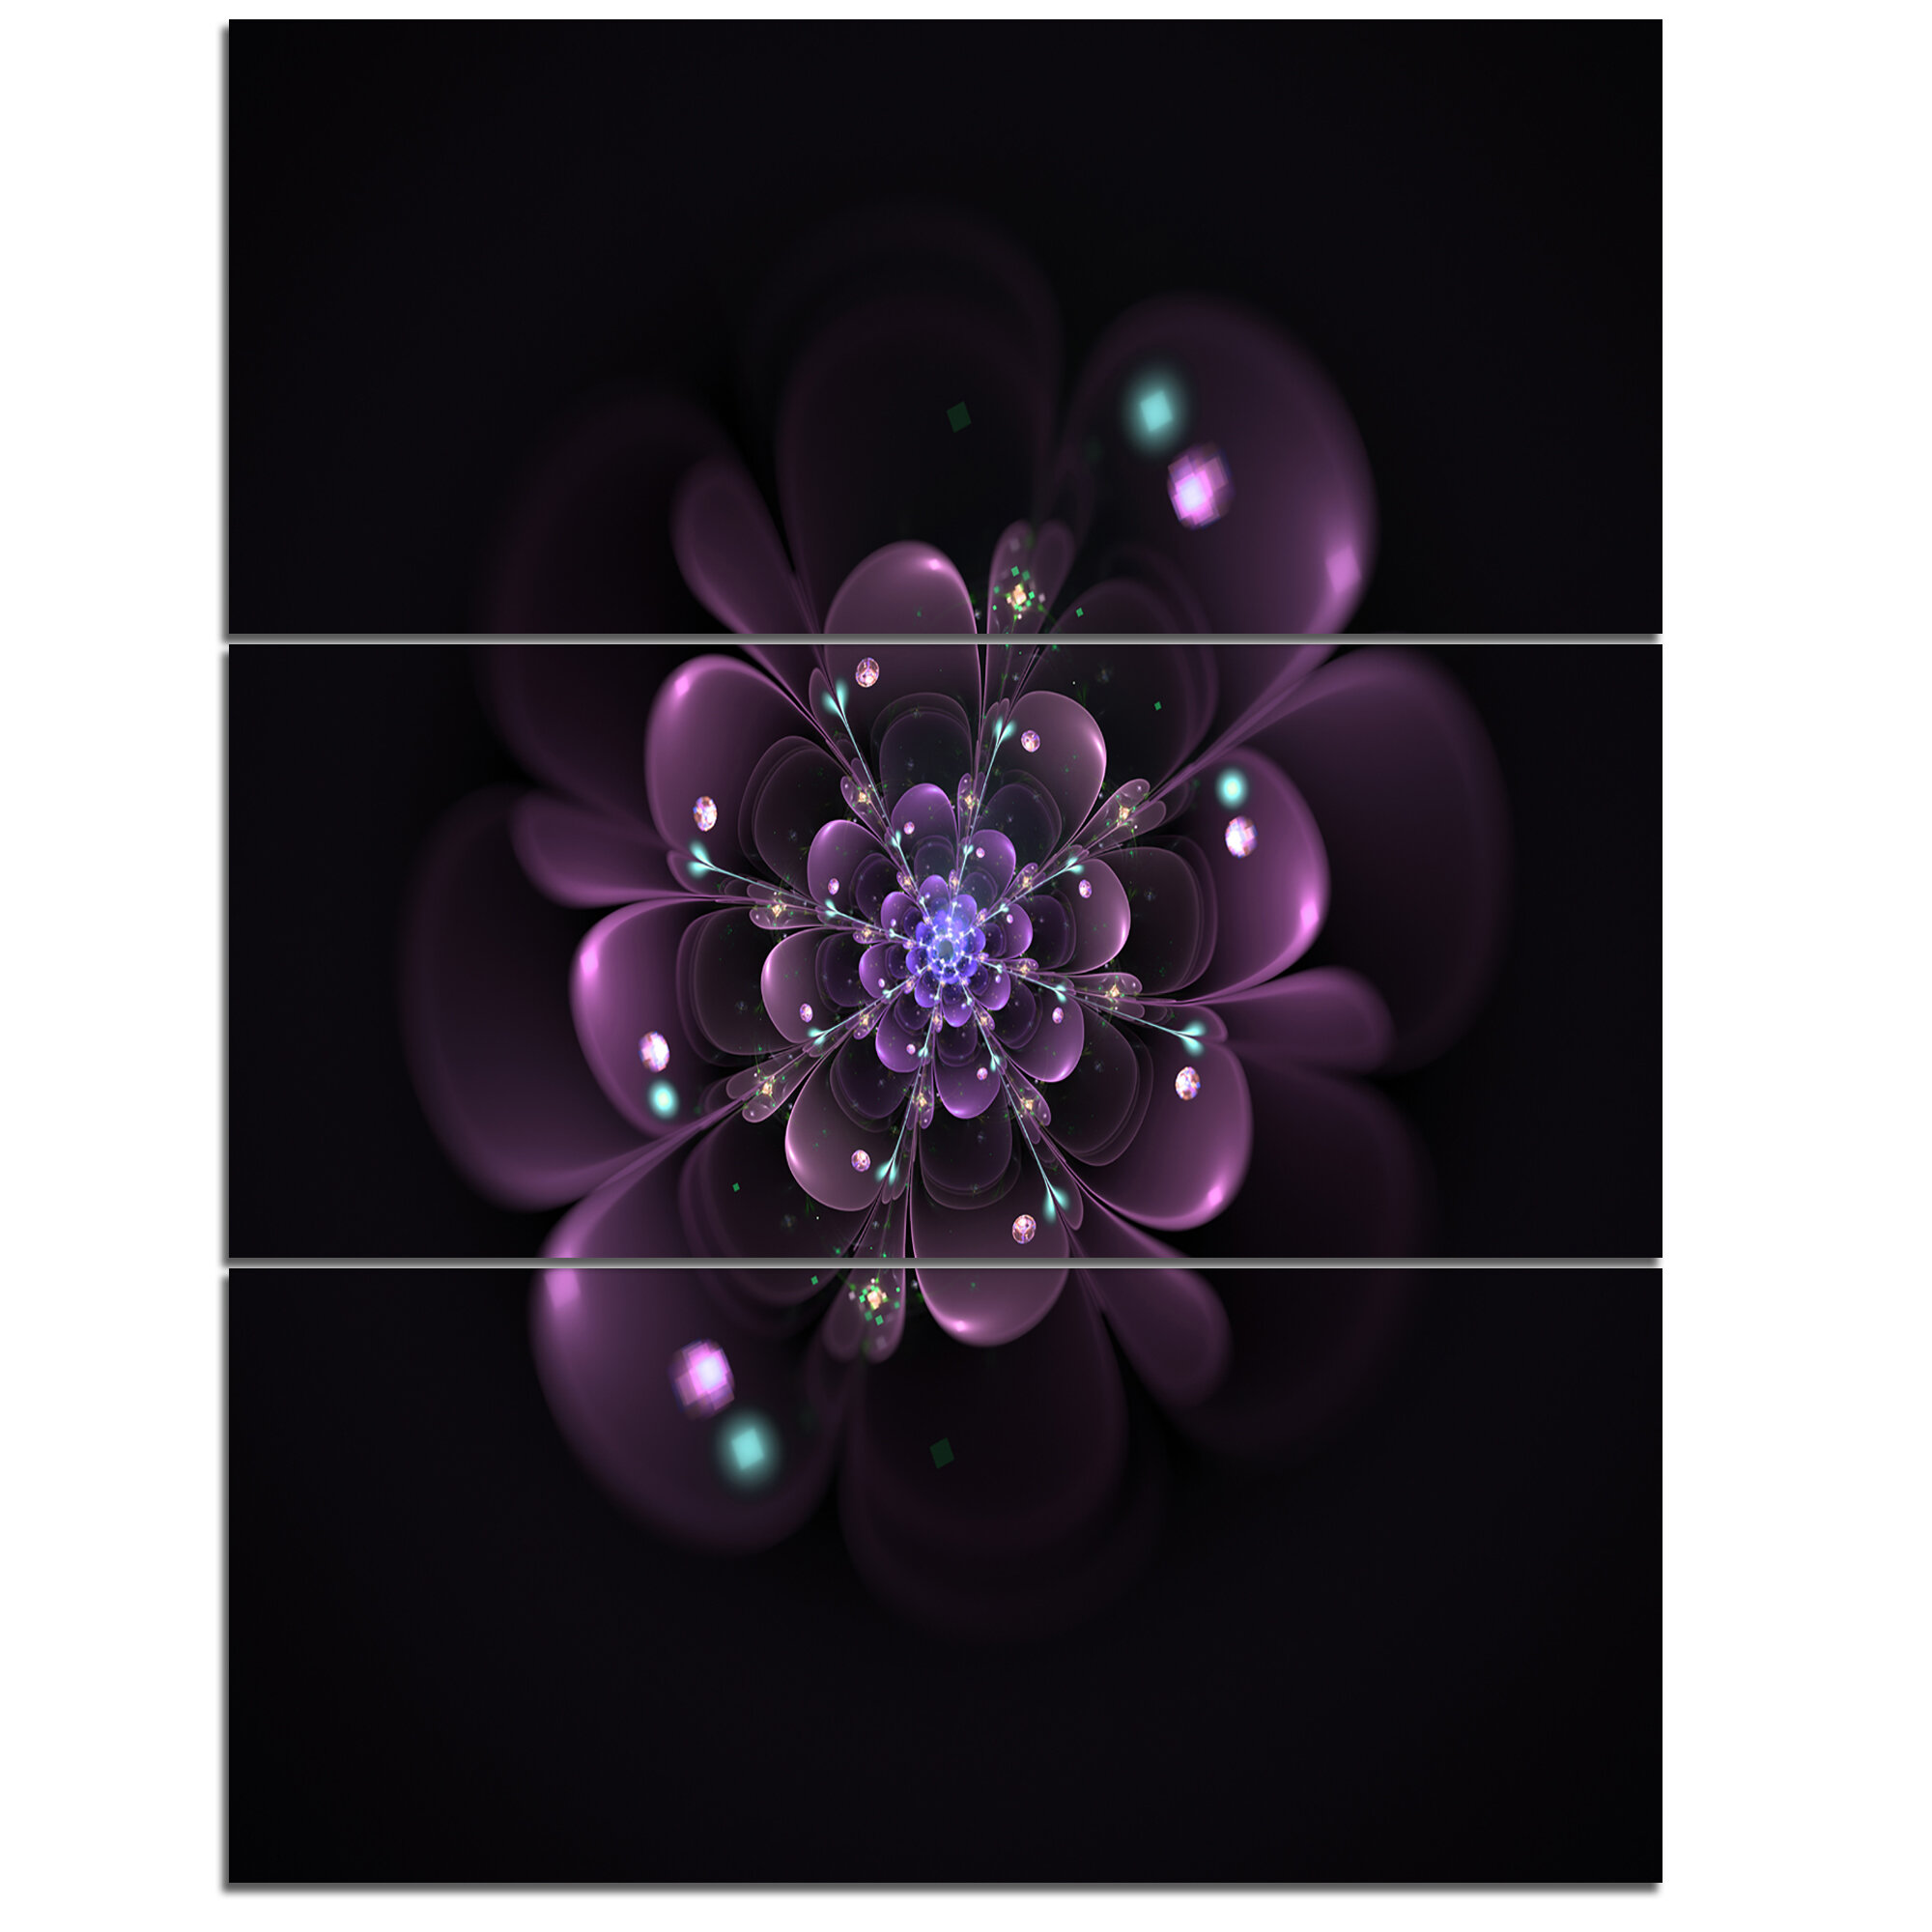 Designart Glowing Light Purple Fractal Flower On Black 3 Piece Graphic Art On Wrapped Canvas Set Wayfair